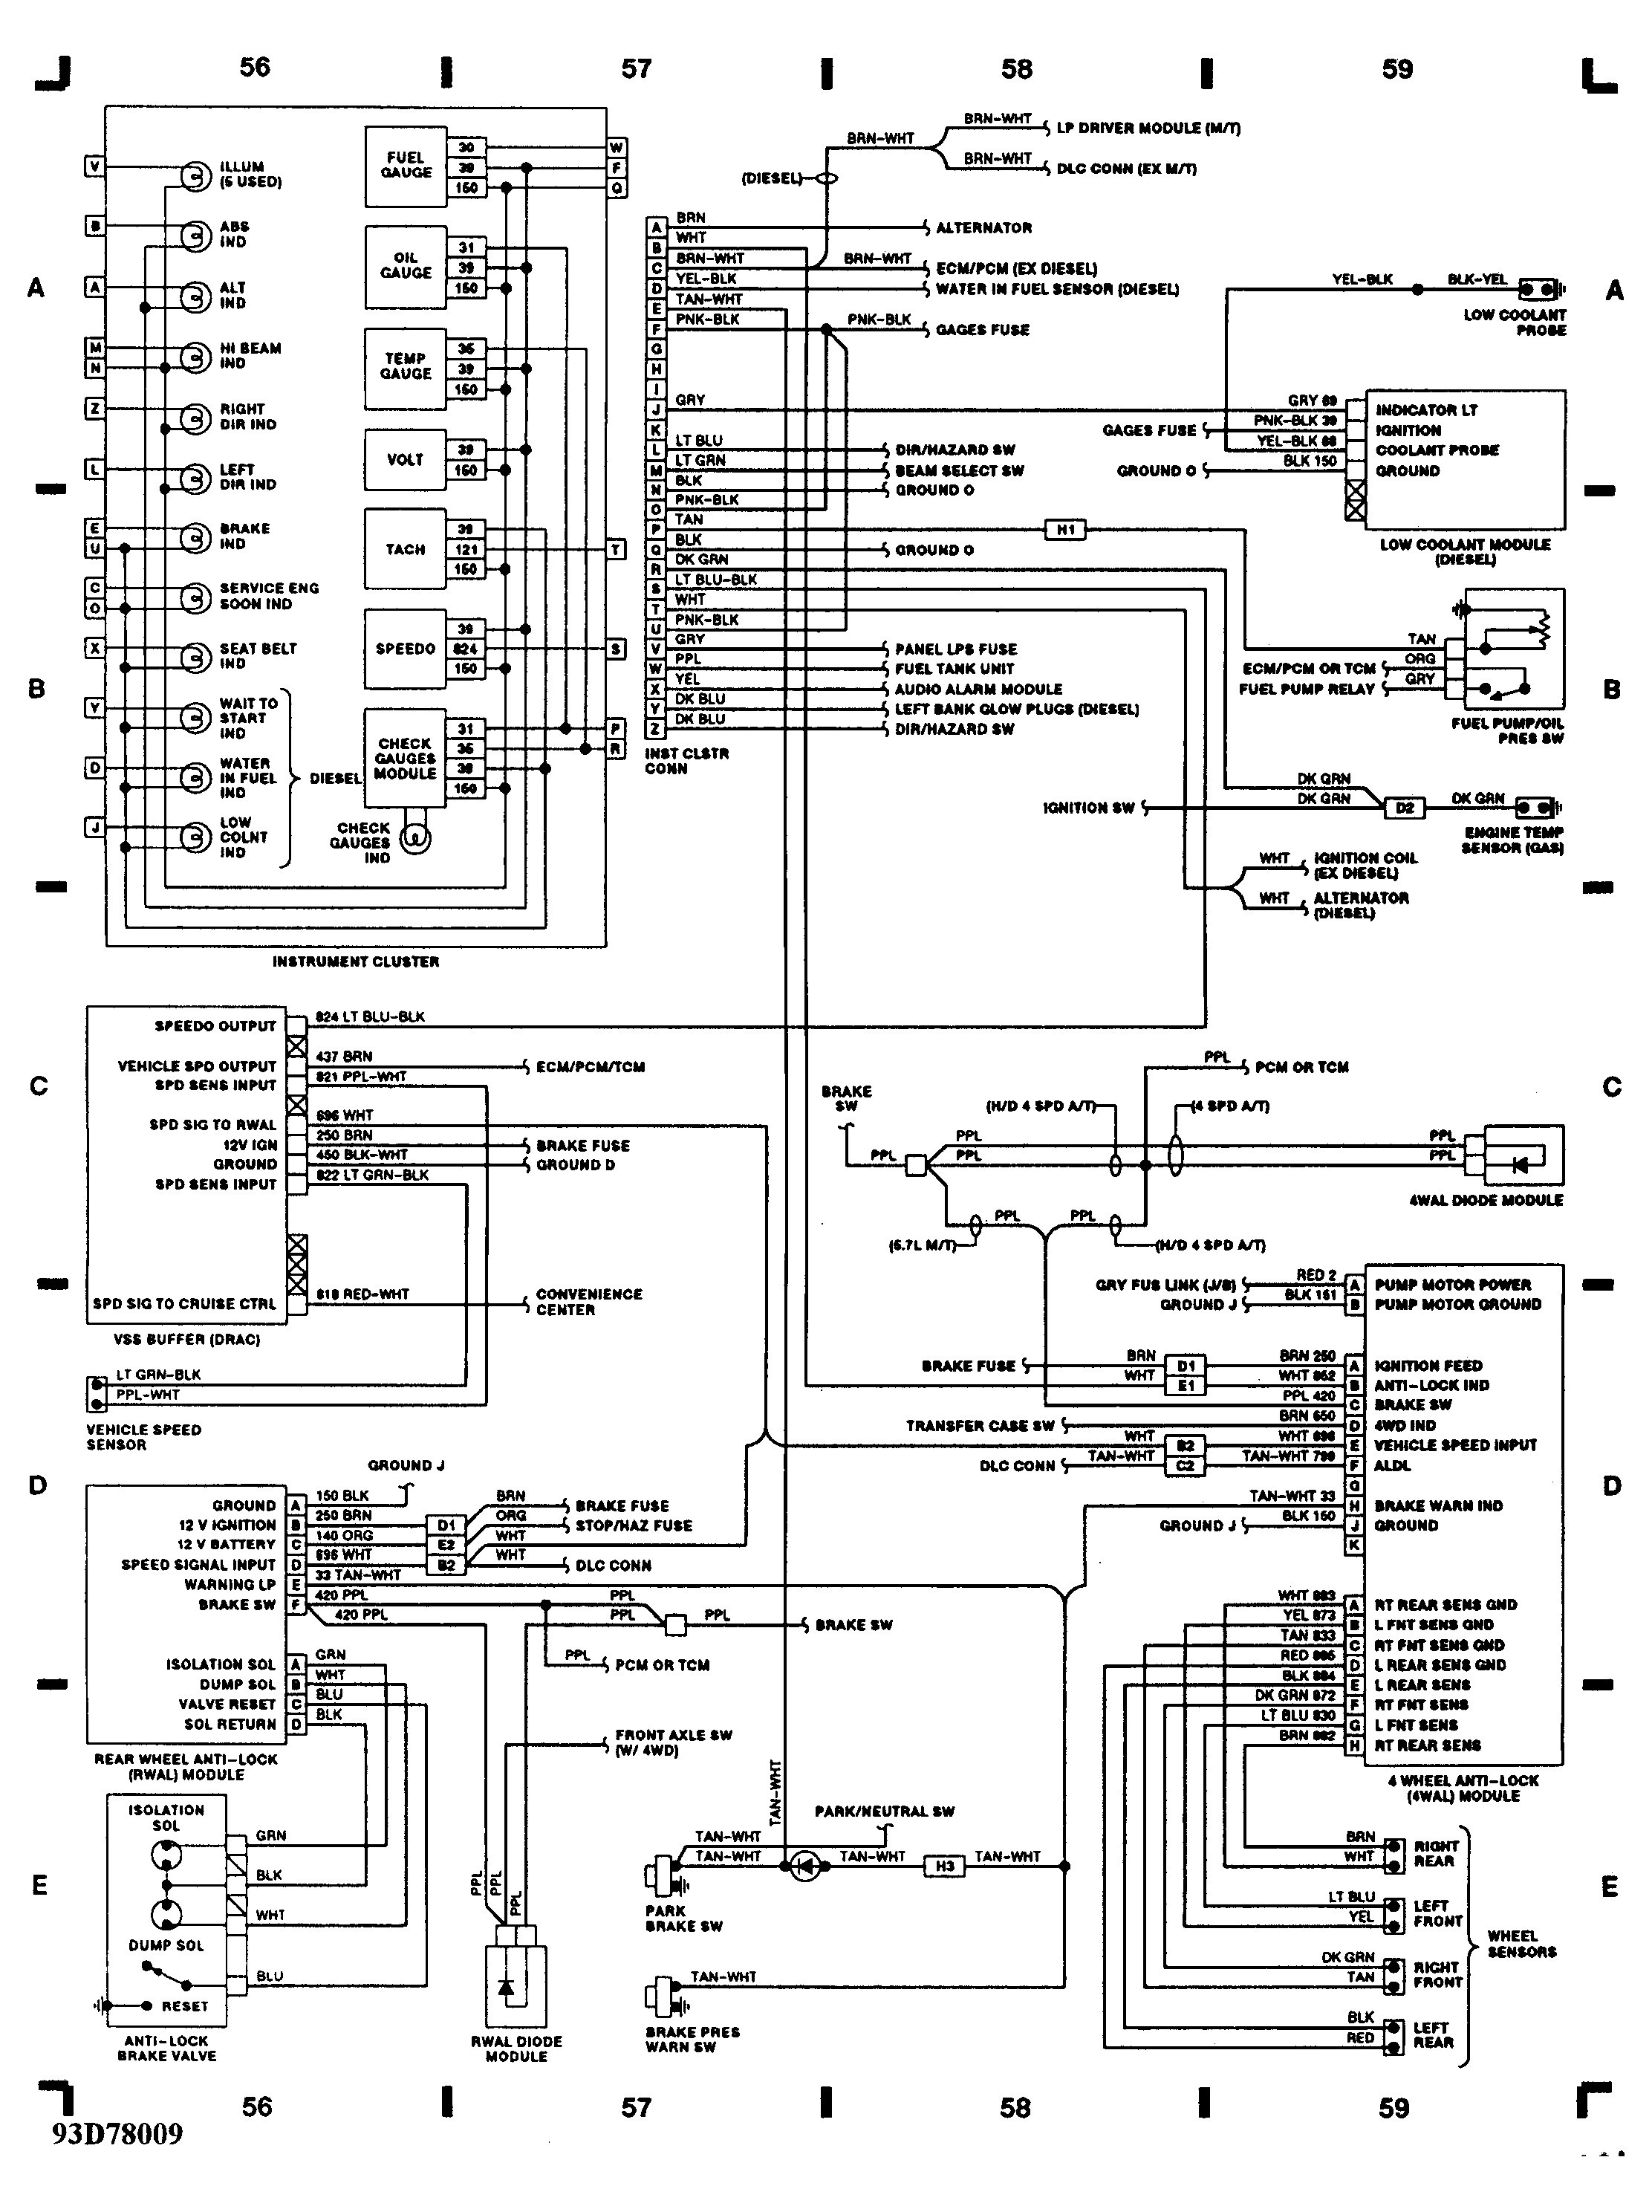 DIAGRAM] Chevy Astro Wiring Diagram Free Download Schematic FULL Version HD  Quality Download Schematic - PHONEBOARDSCHEMATIC5937.ARBREDESVOIX.FR